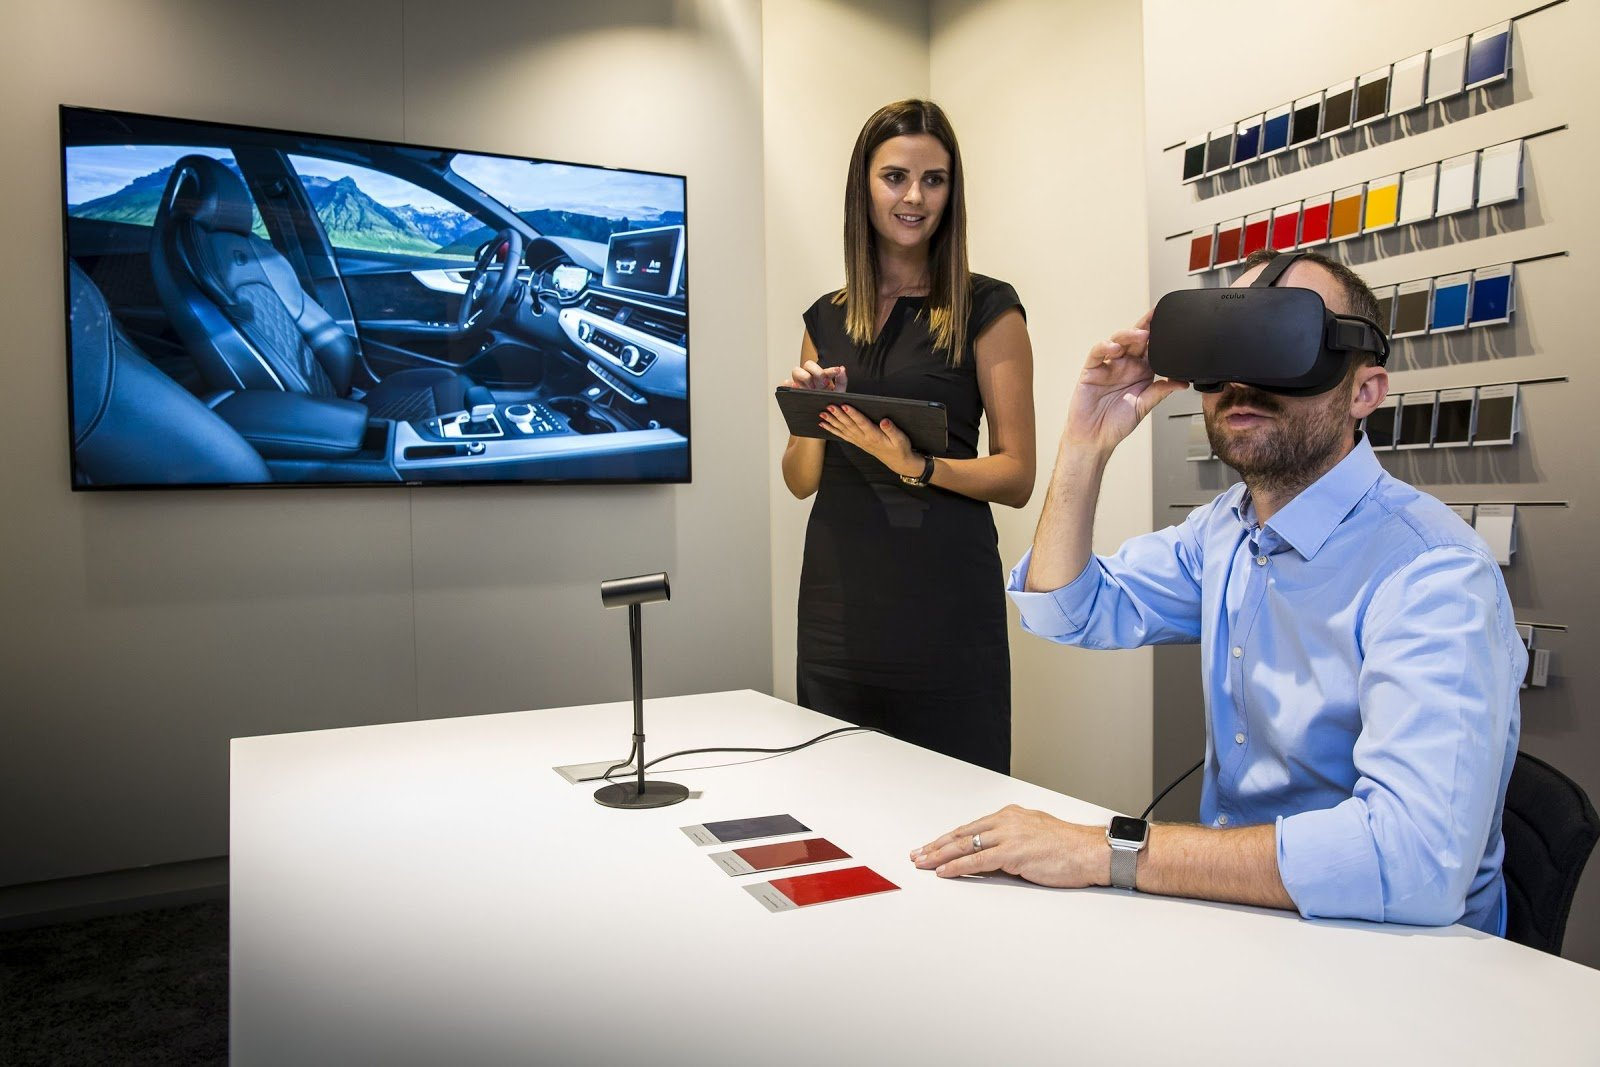 VR technology in Audi dealerships